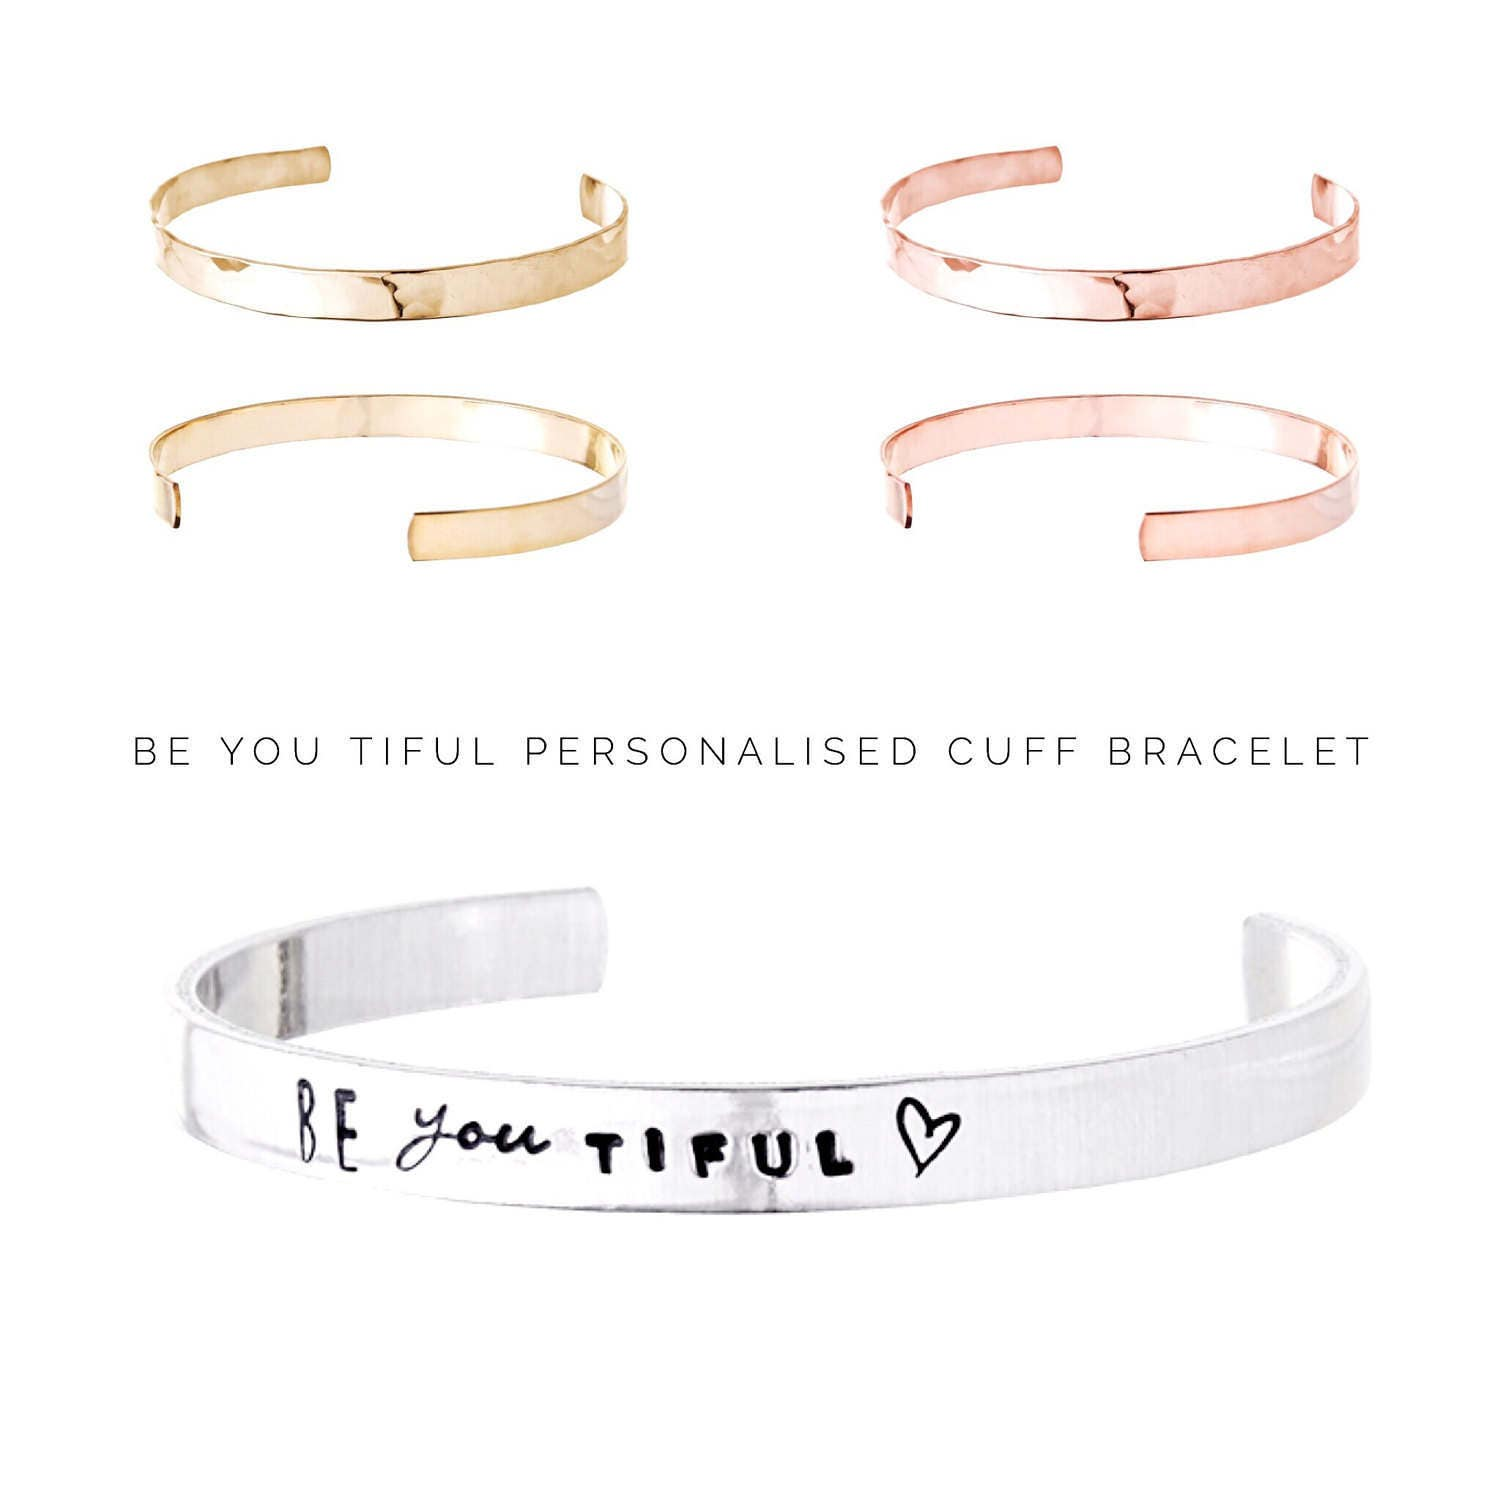 Womens gift  Personalized jewelry  Be you tiful  Personalized Bracelet  Gift ideas for her  Gifts for friends (C176)